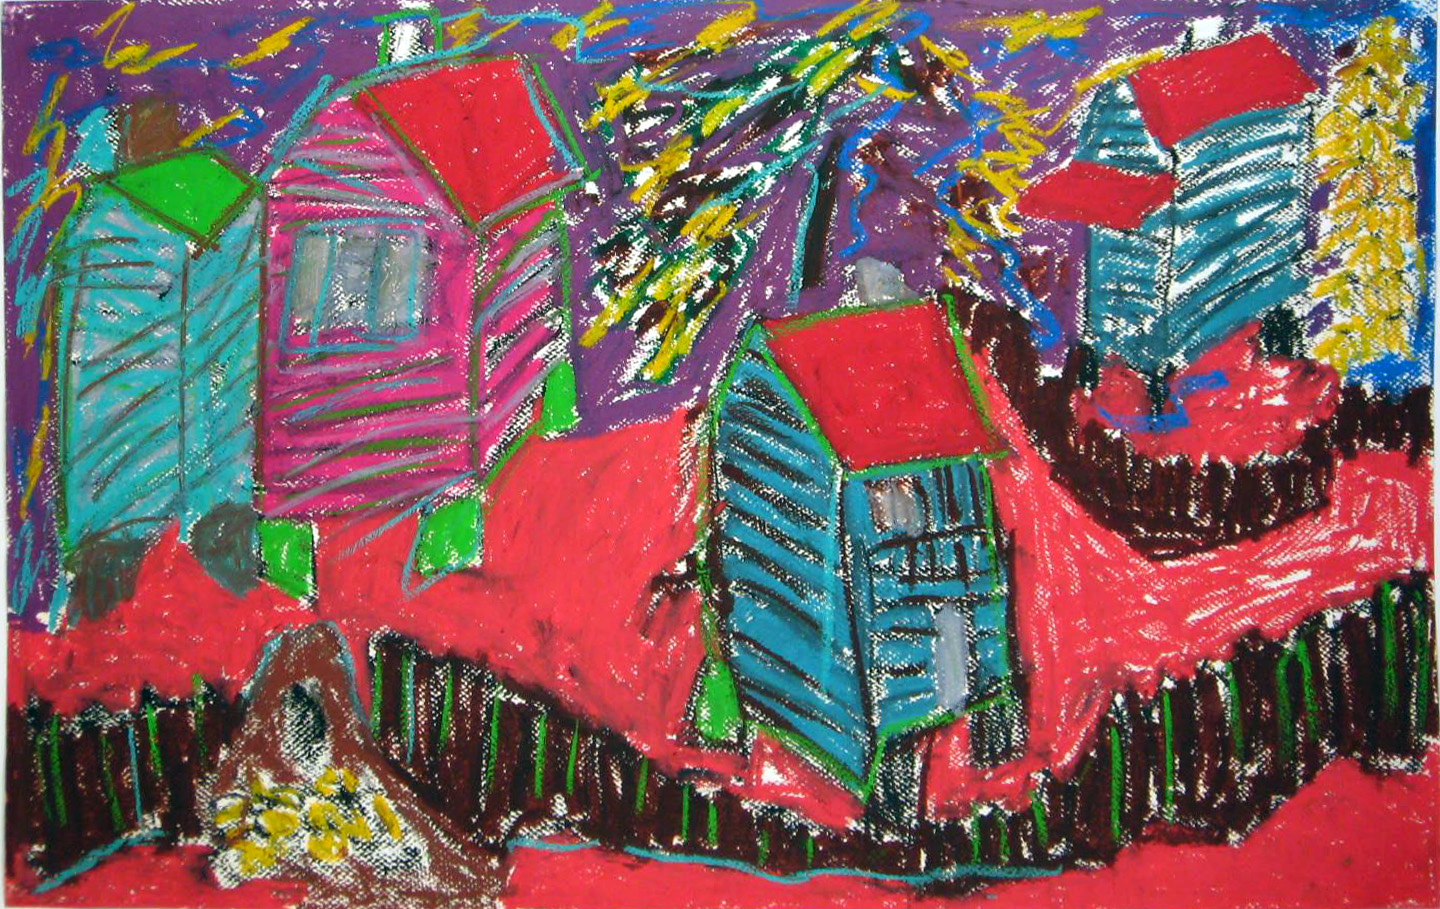 Beverly Buchanan, Hog Mountain Christmas, 1995. Oil pastel on paper, 26.5 x 40.5 inches. Image courtesy Andrew Edlin gallery, New York.